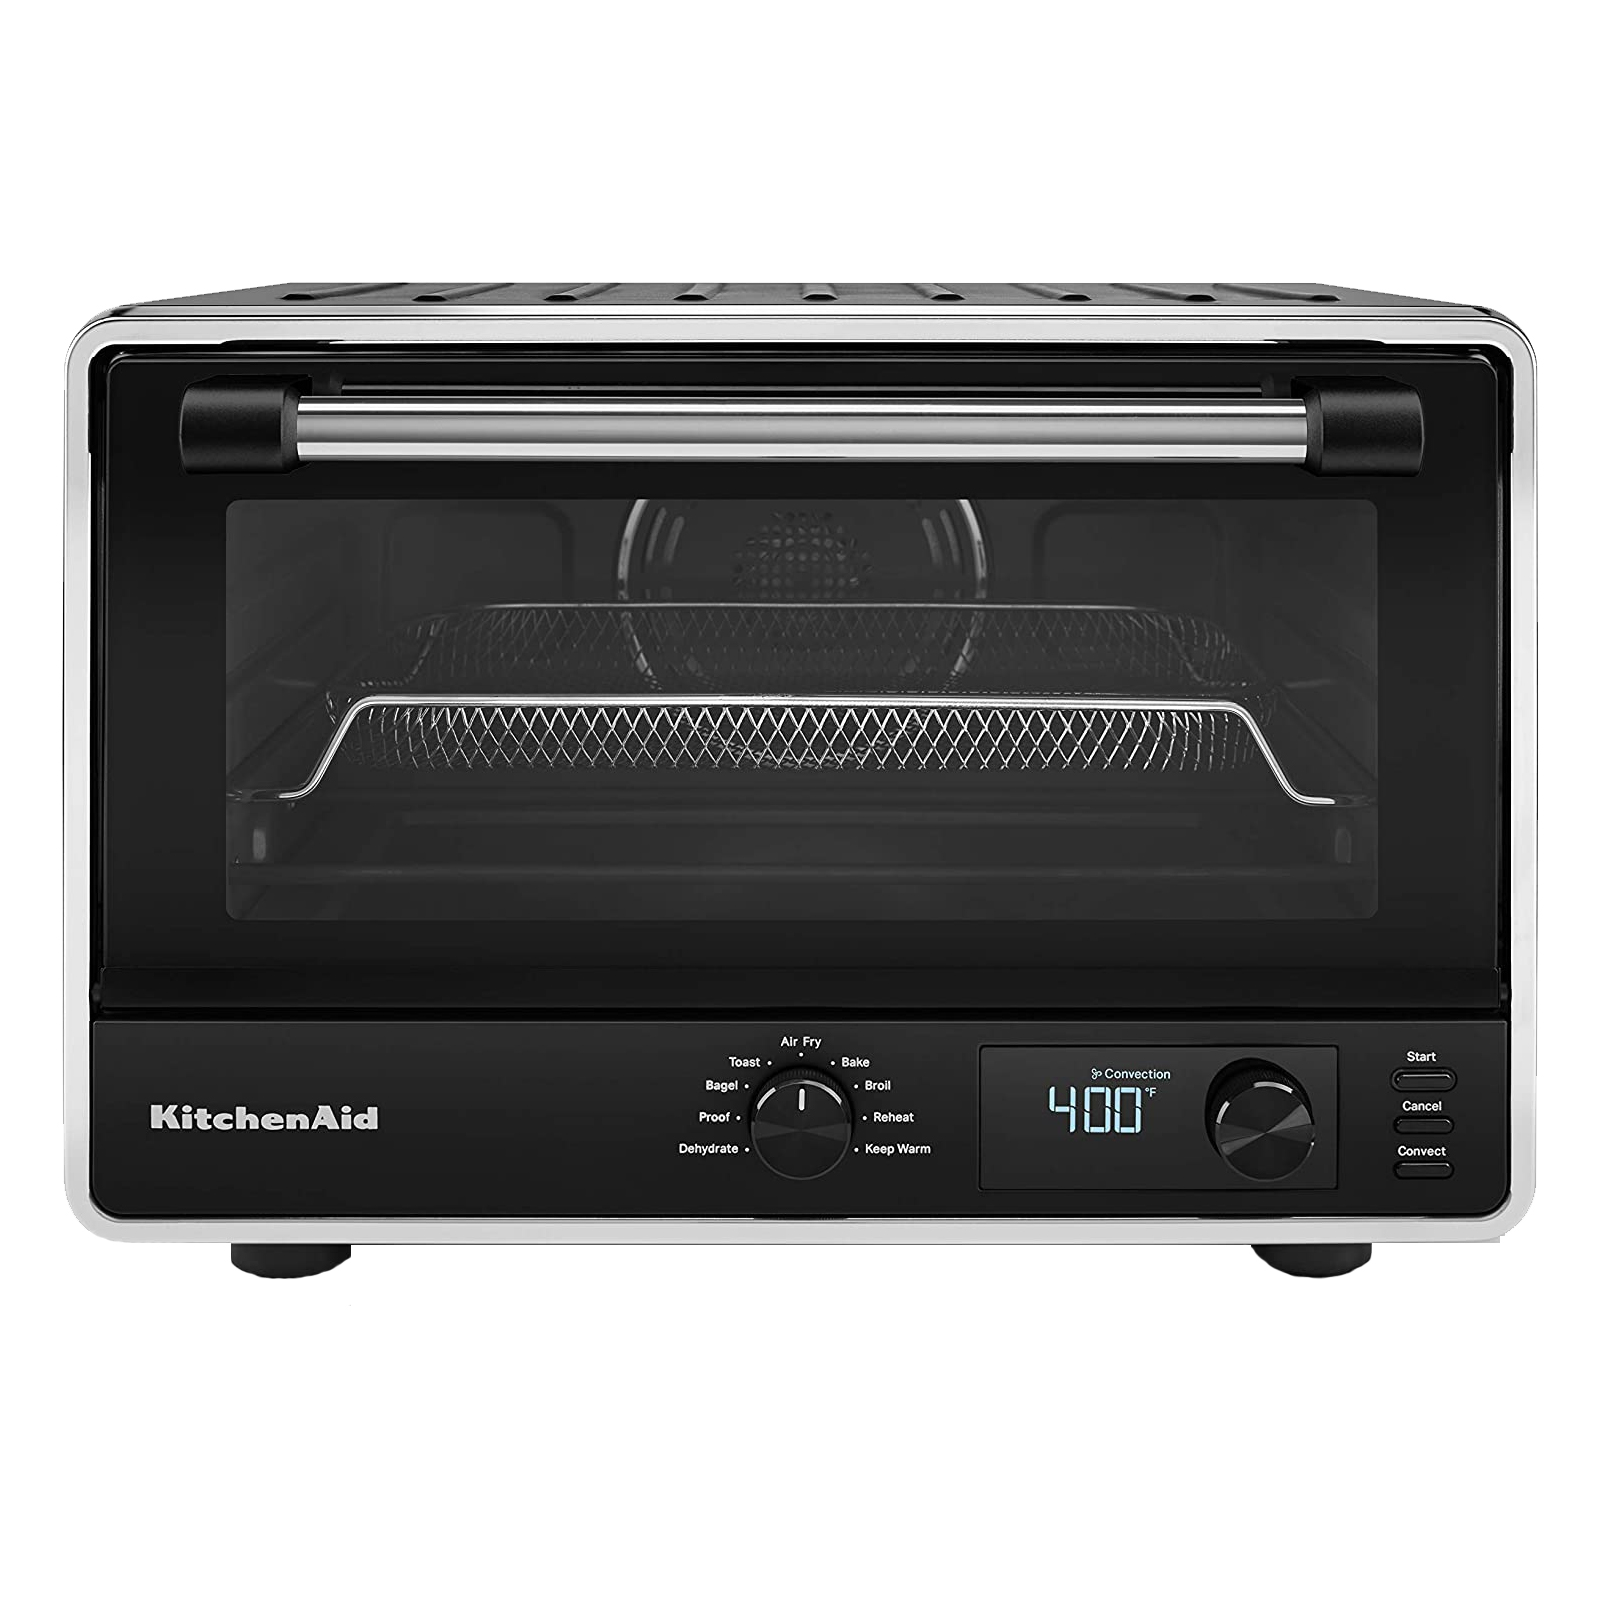 Digital Countertop Oven With Air Fry